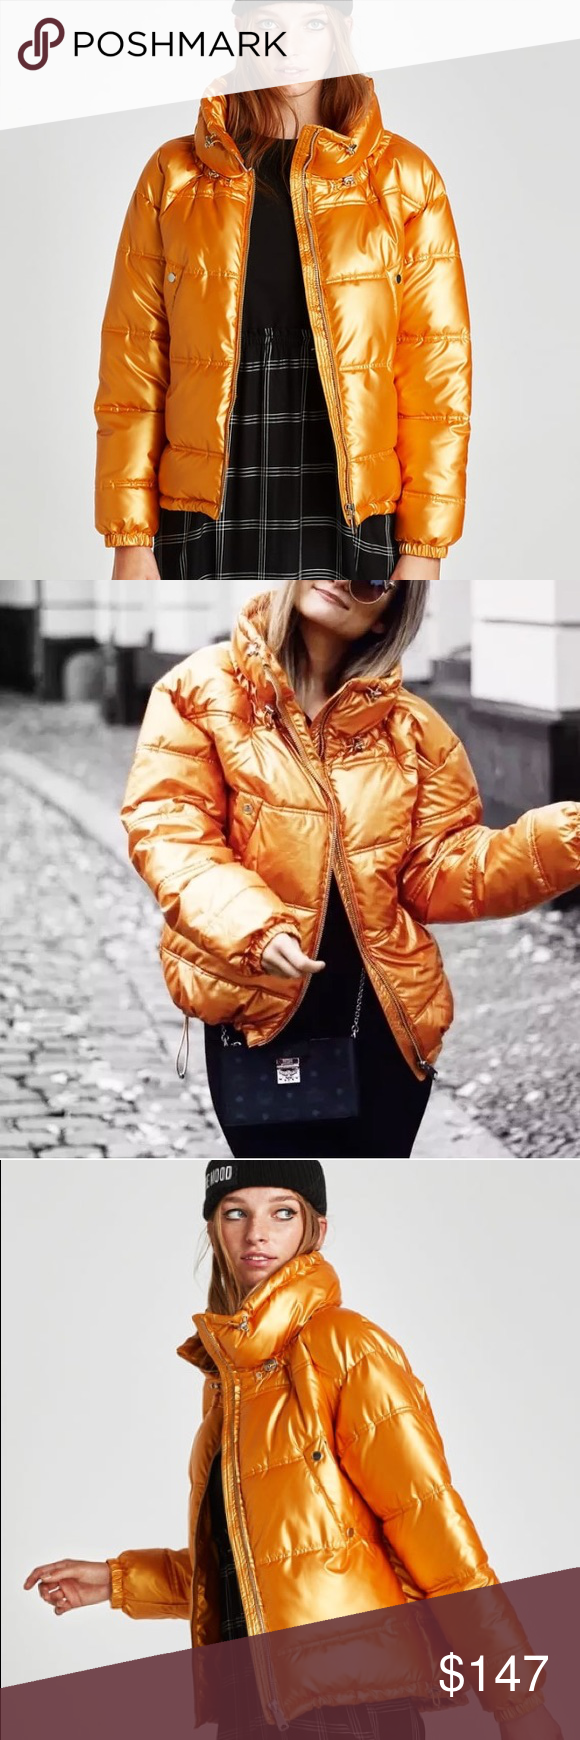 Zara Metallic Gold Puffer Jacket This Jacket Is For The Bold And Beautiful Quilted Jacket With High Collar Adjustable Elastic Tabs El Jackets Zara Zara Gold [ 1740 x 580 Pixel ]